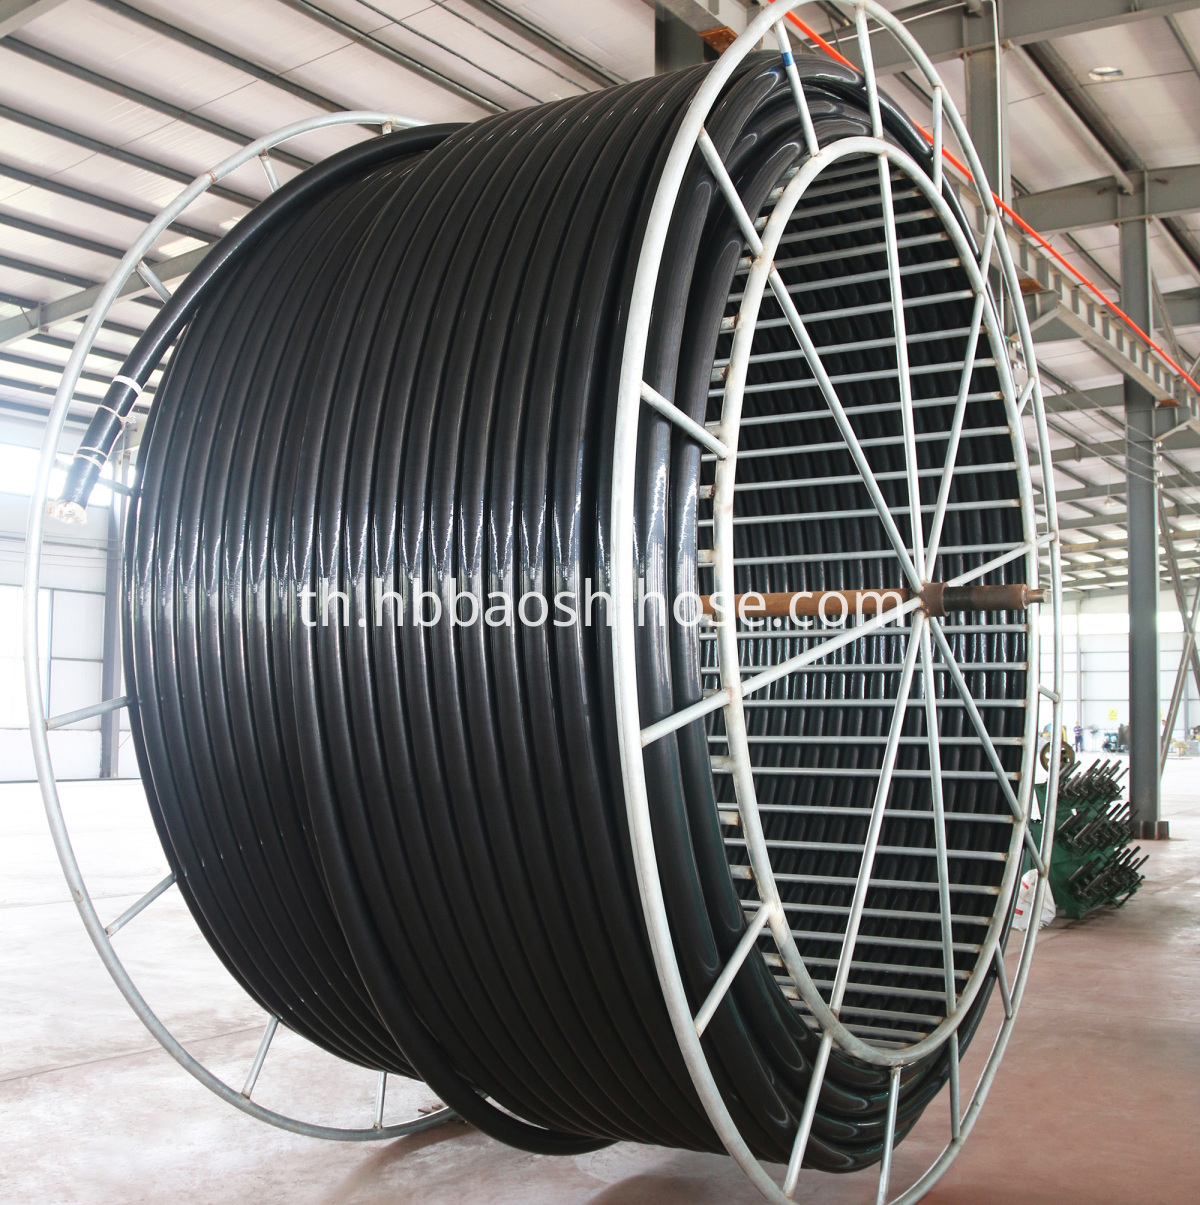 Flexible Composite Hose